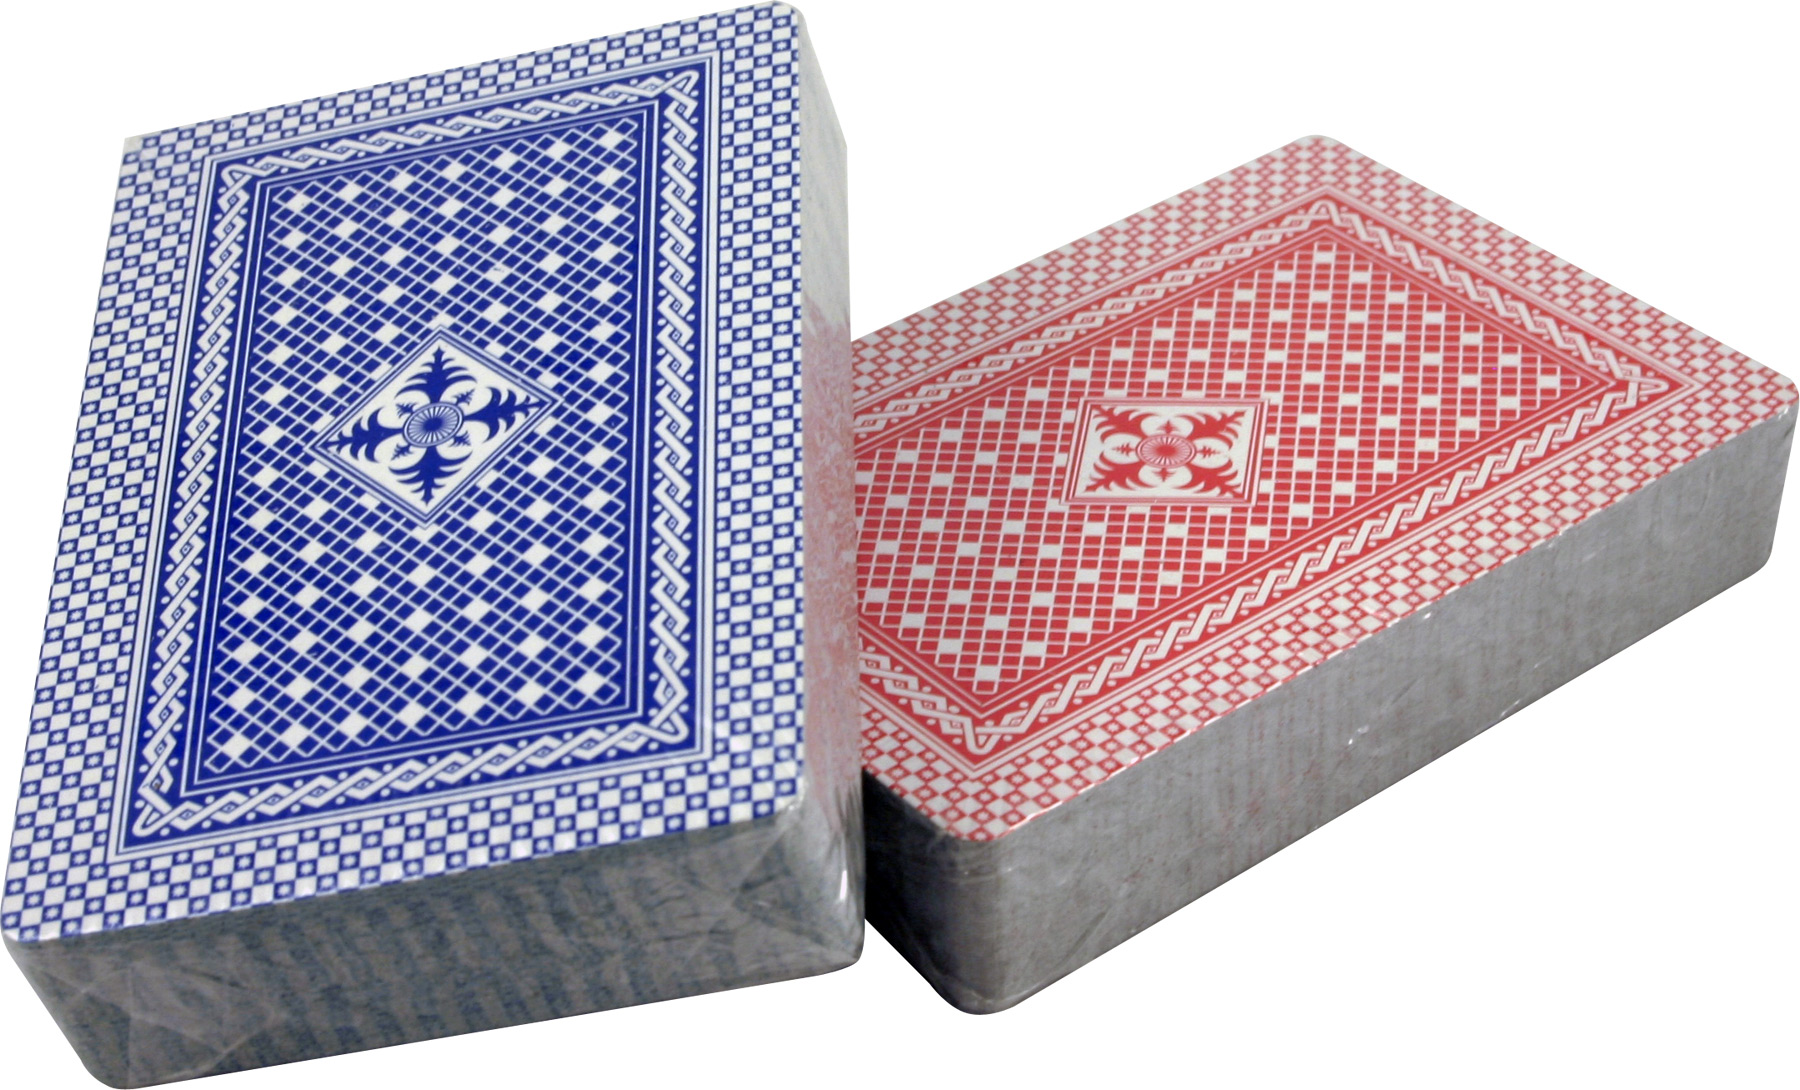 Diamond Plastic Playing Cards 2 Decks Prices In India